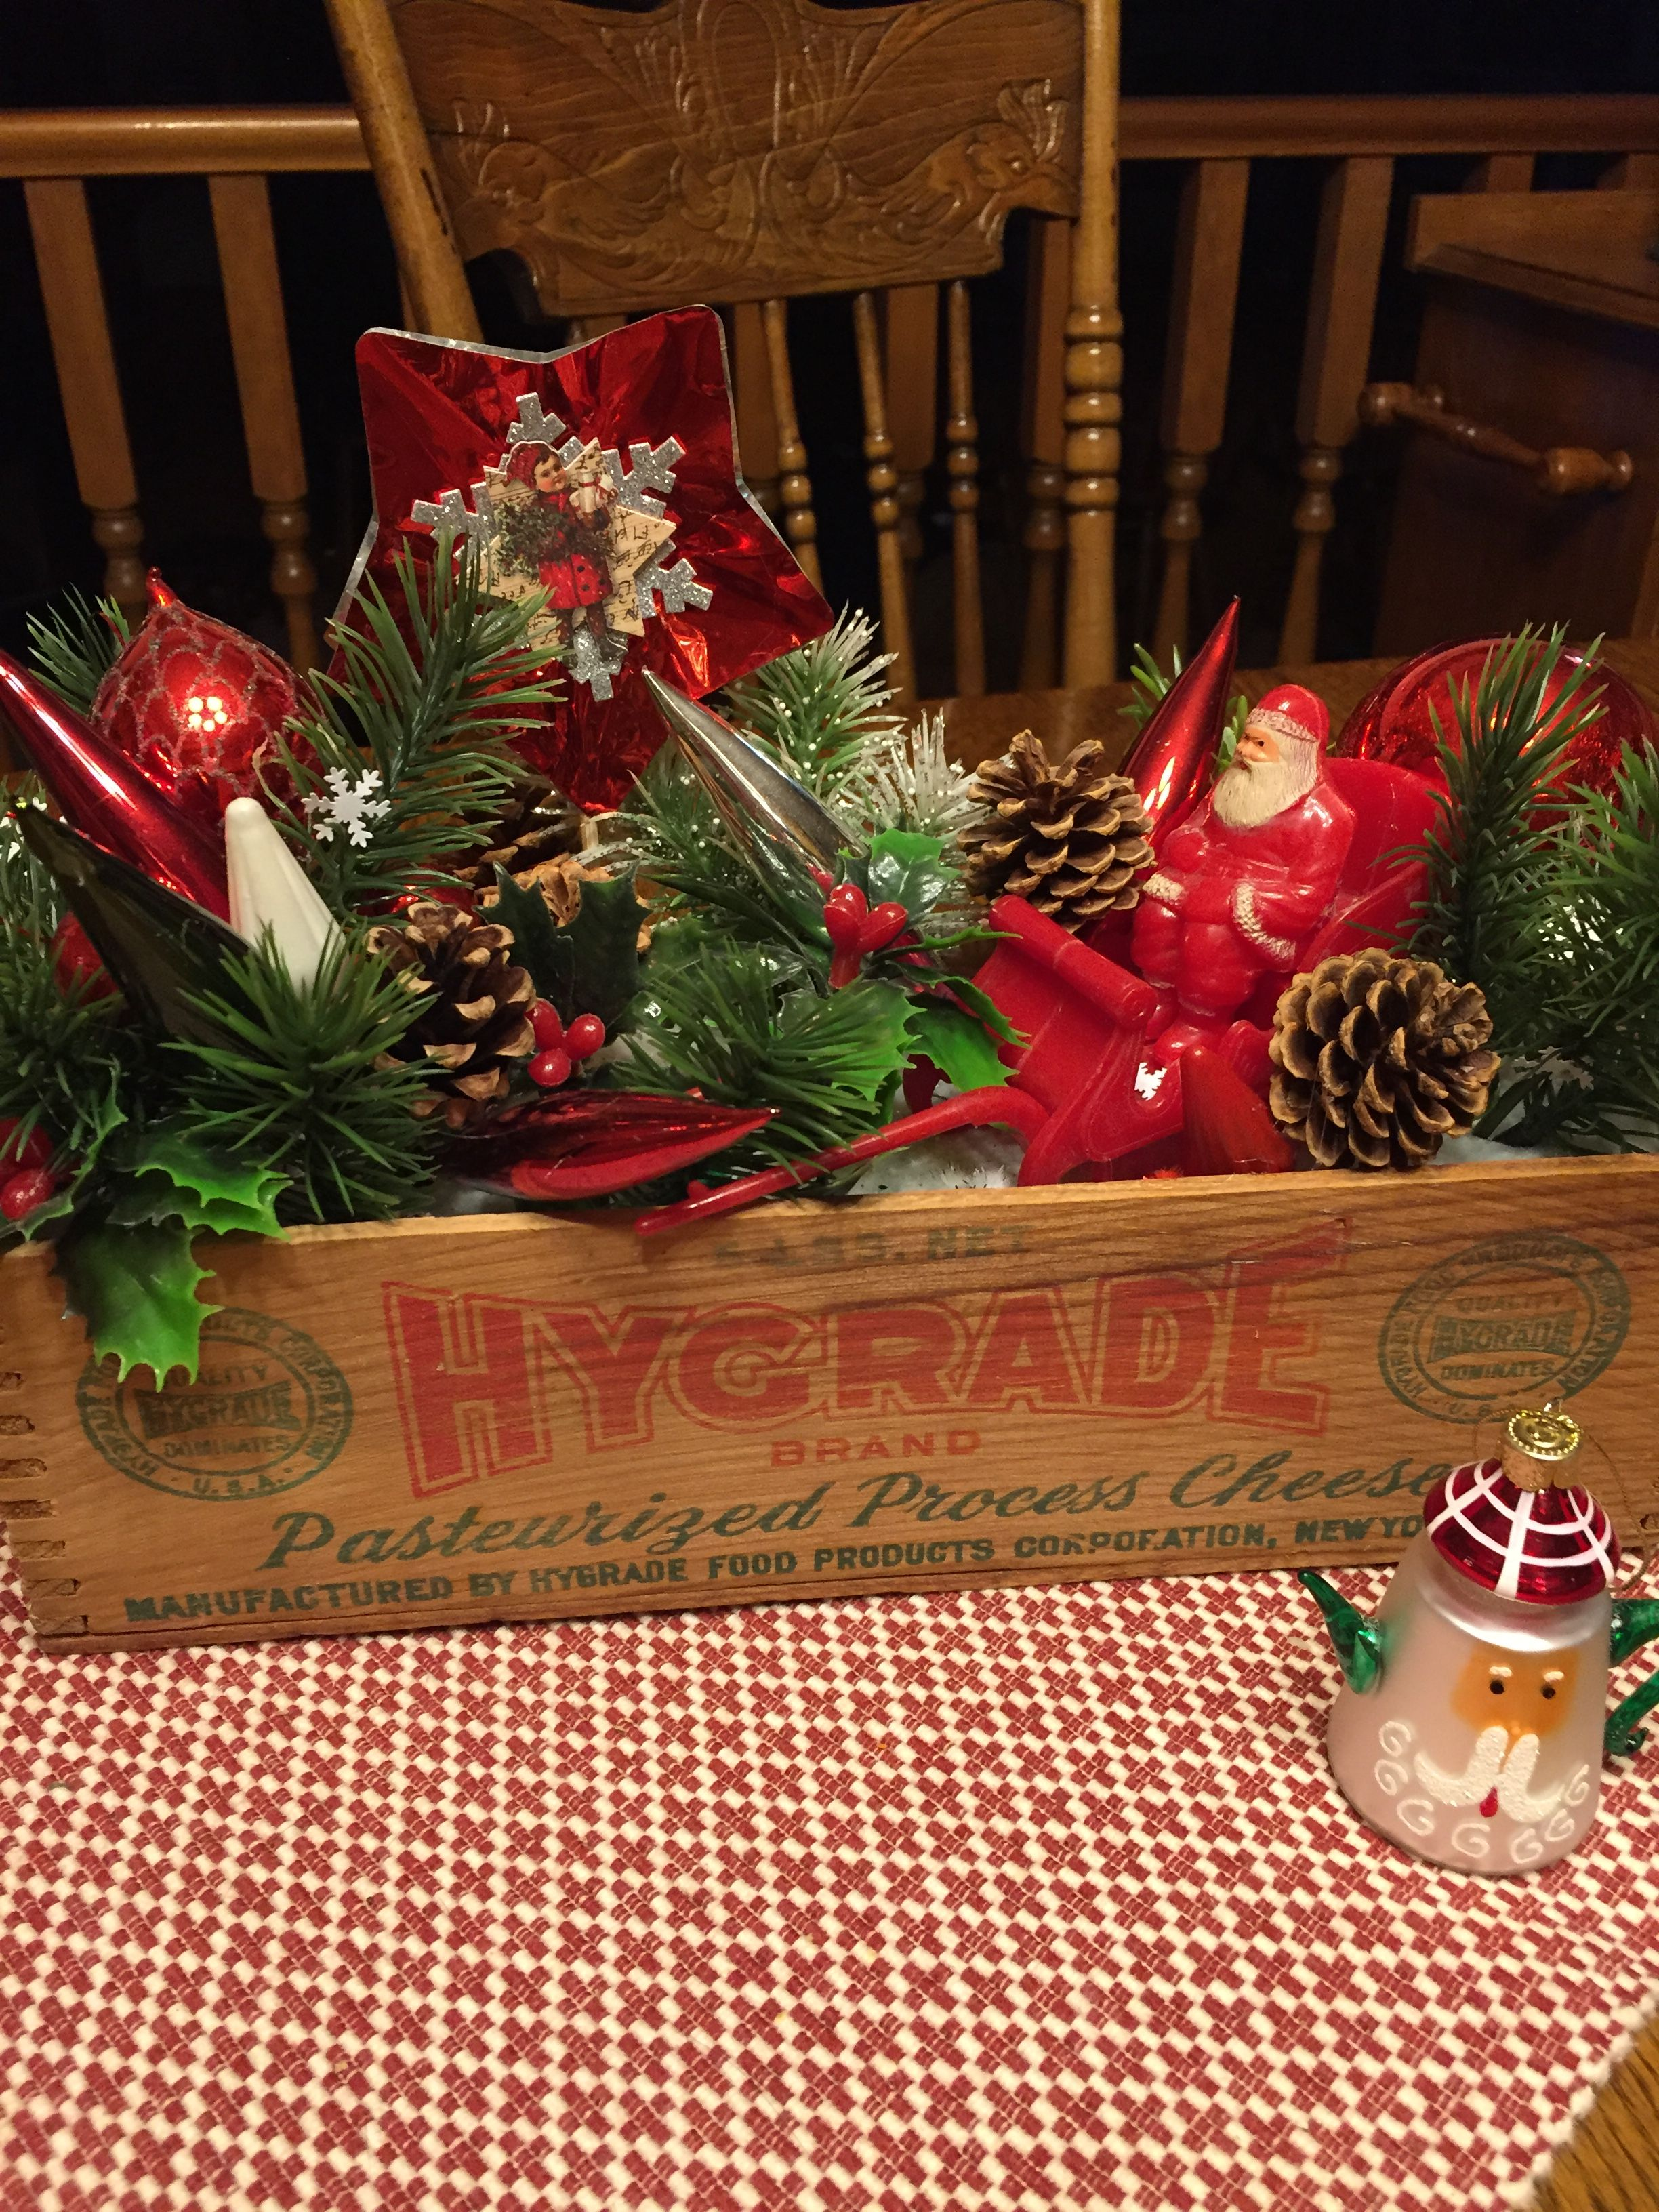 Old Cheese Box Filled With Vintage Christmas Decorations Makes A Great Table Display Vintage Christmas Vintage Christmas Decorations Christmas Table Settings